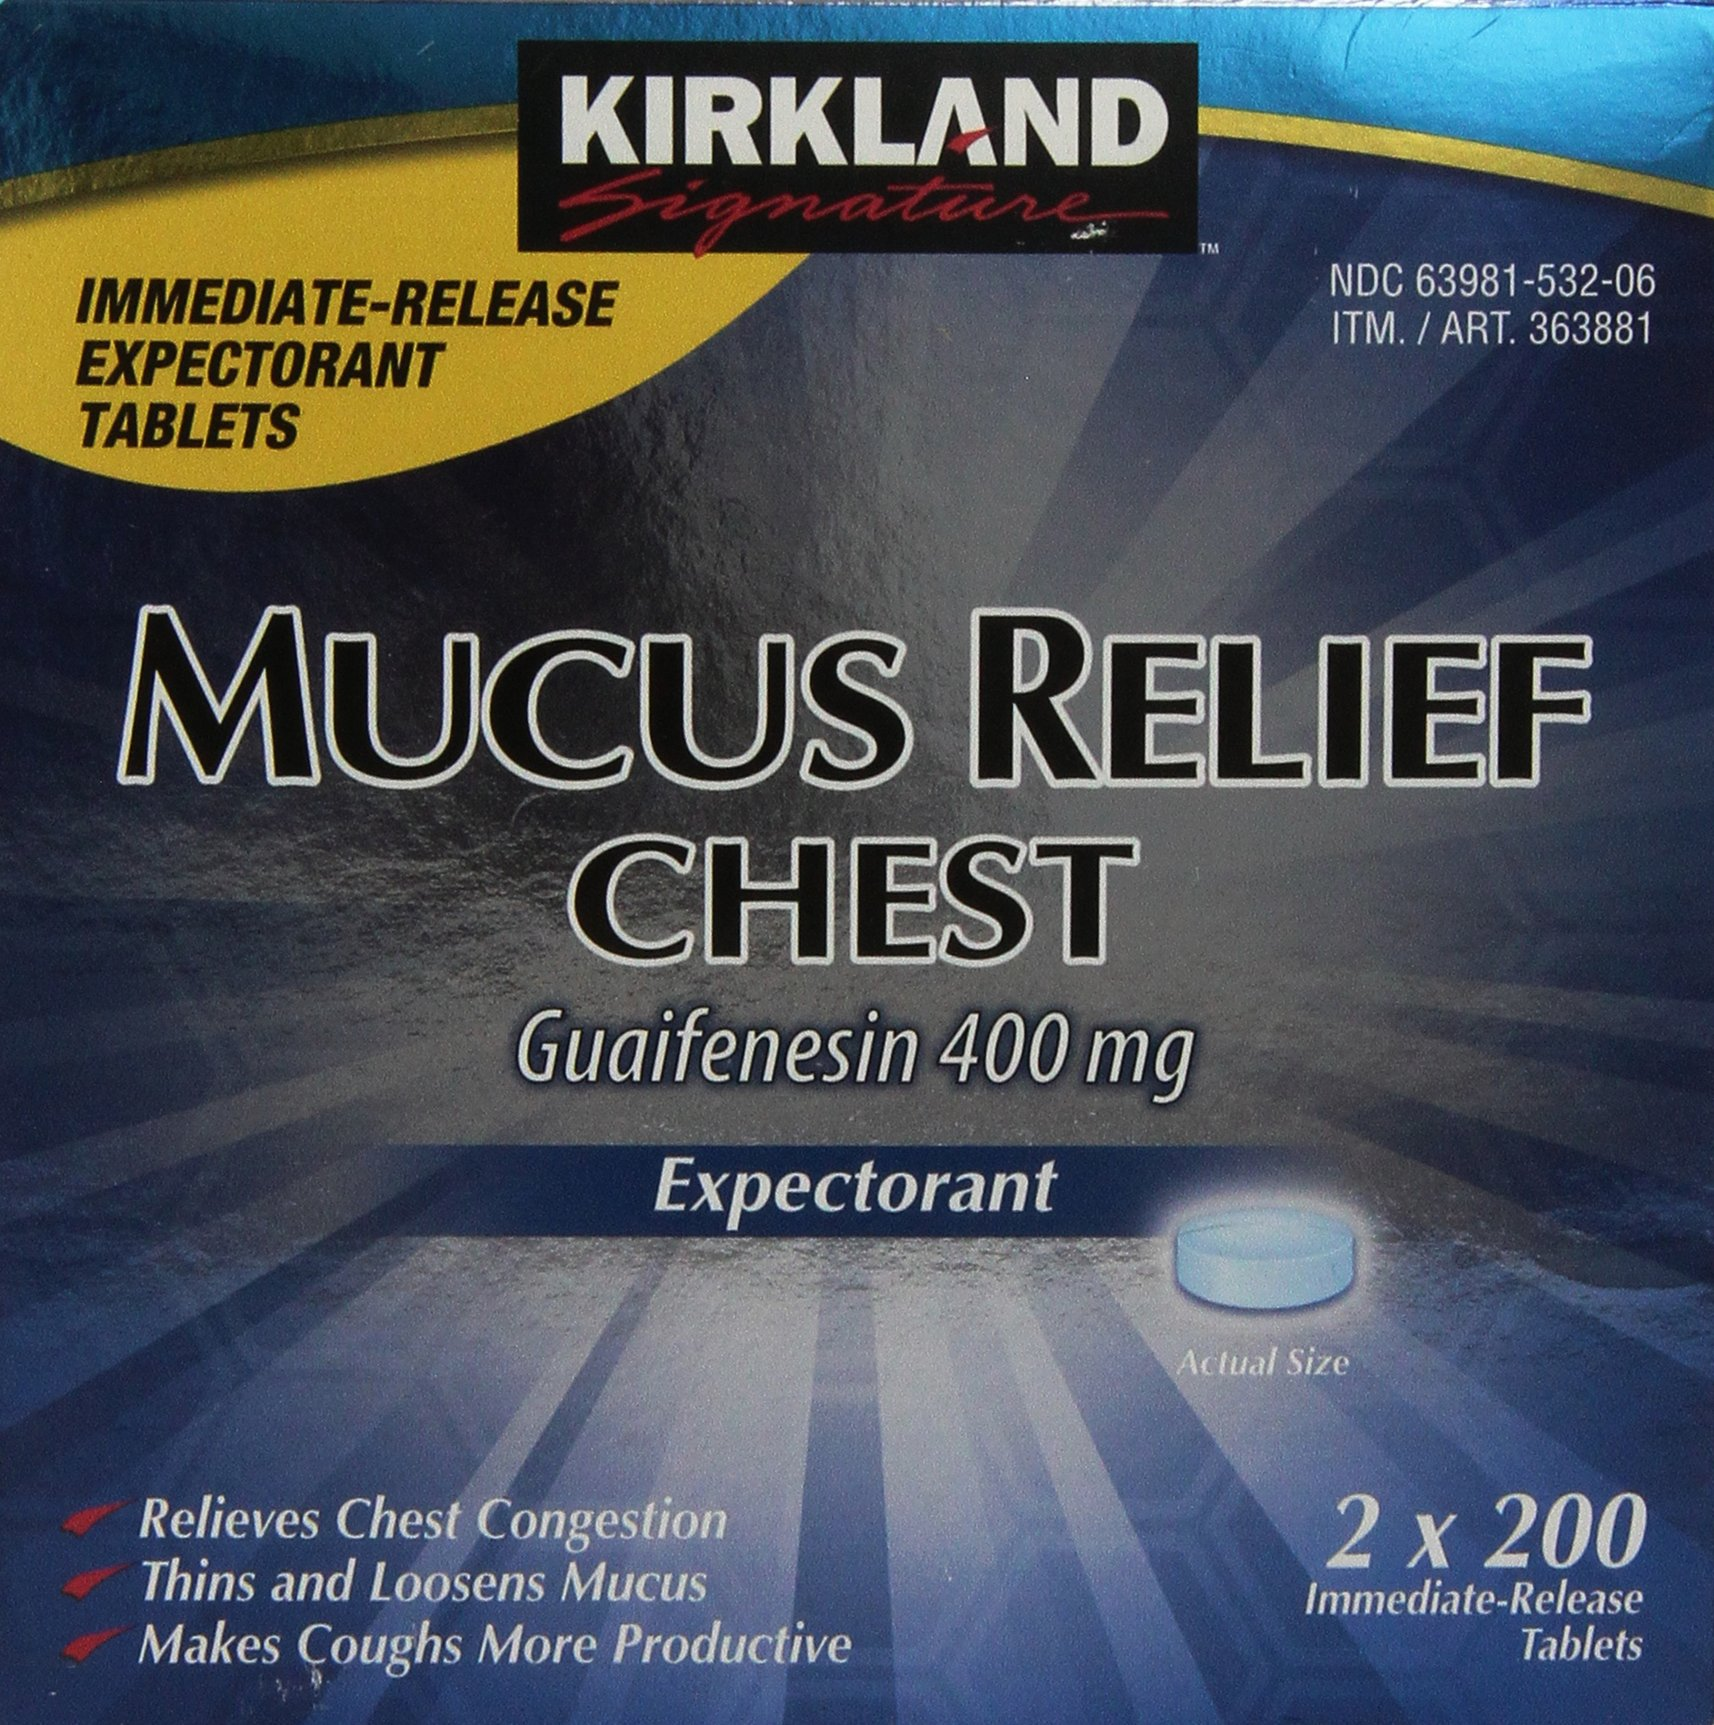 Kirkland Signature Mucus Relief Chest Expectorant (Guaifenesin 400 Mg), 2 bottles of 200-Count Immediate-Release Tablets by Kirkland Signature